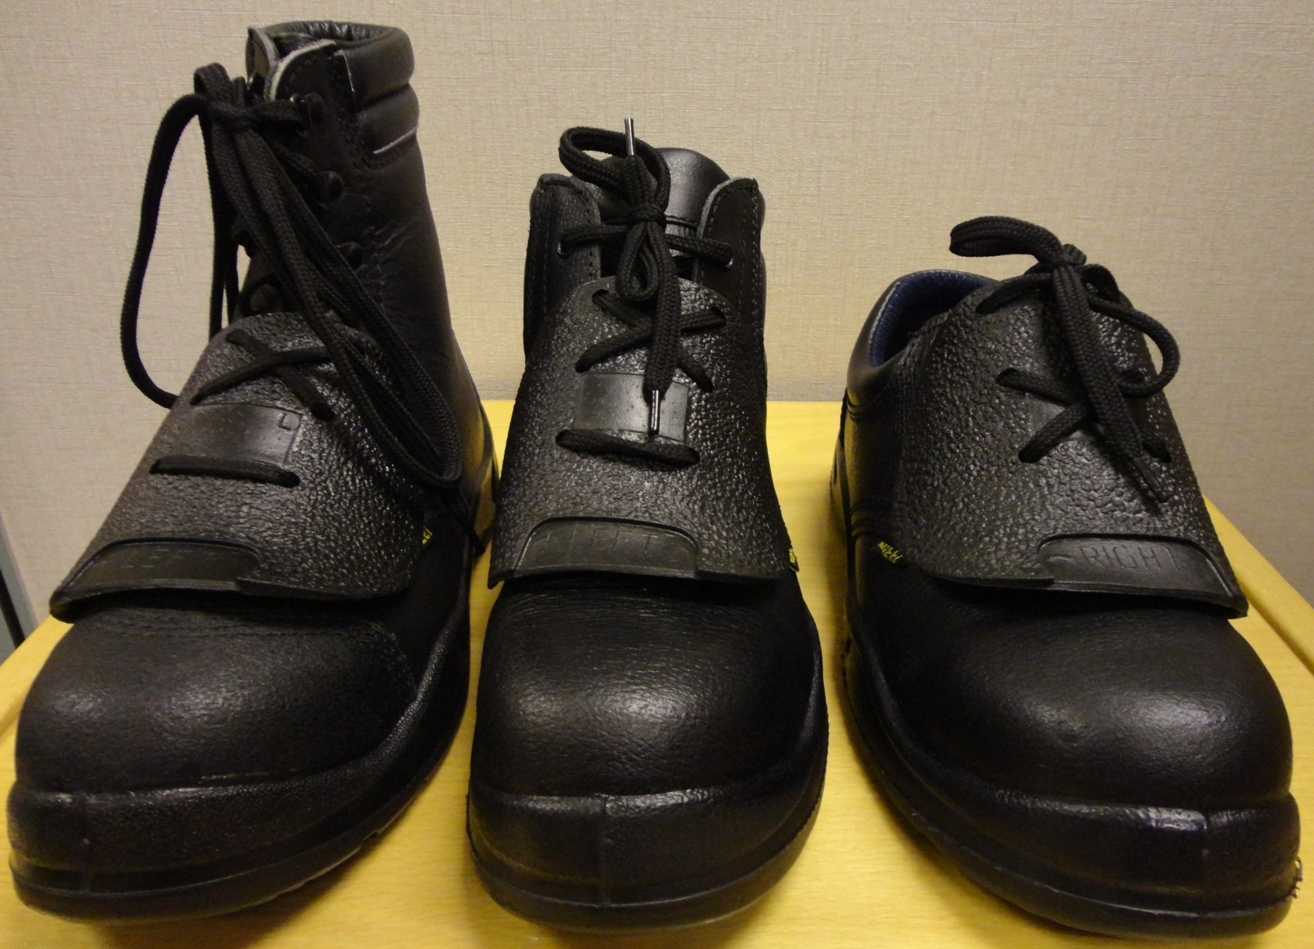 Image result for Metatarsal Guards